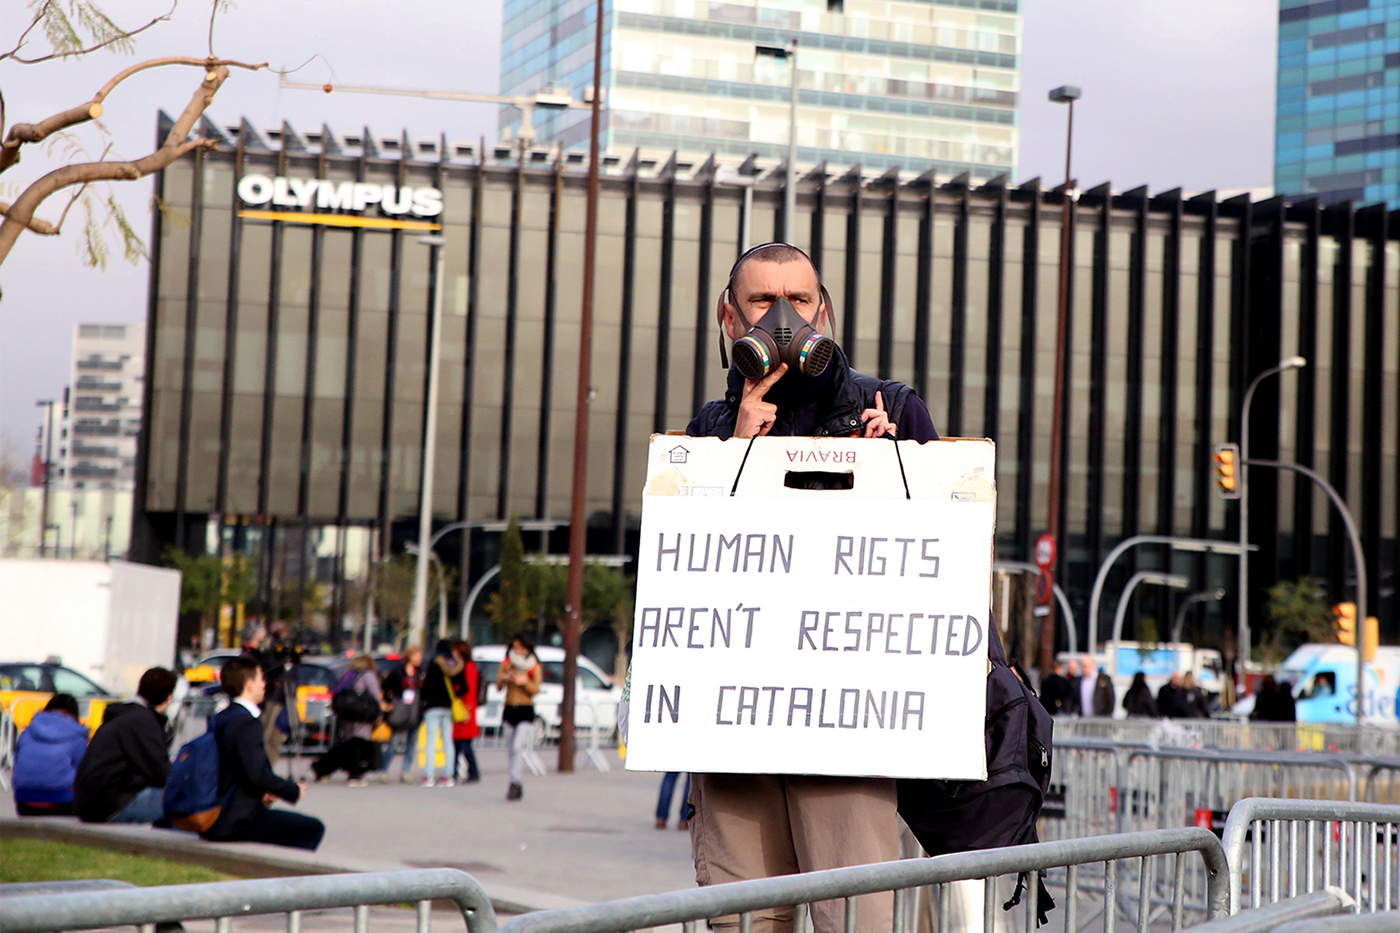 A Catalan man protests against the dangers of electronic pollution outside Mobile World Congress in Barcelona.